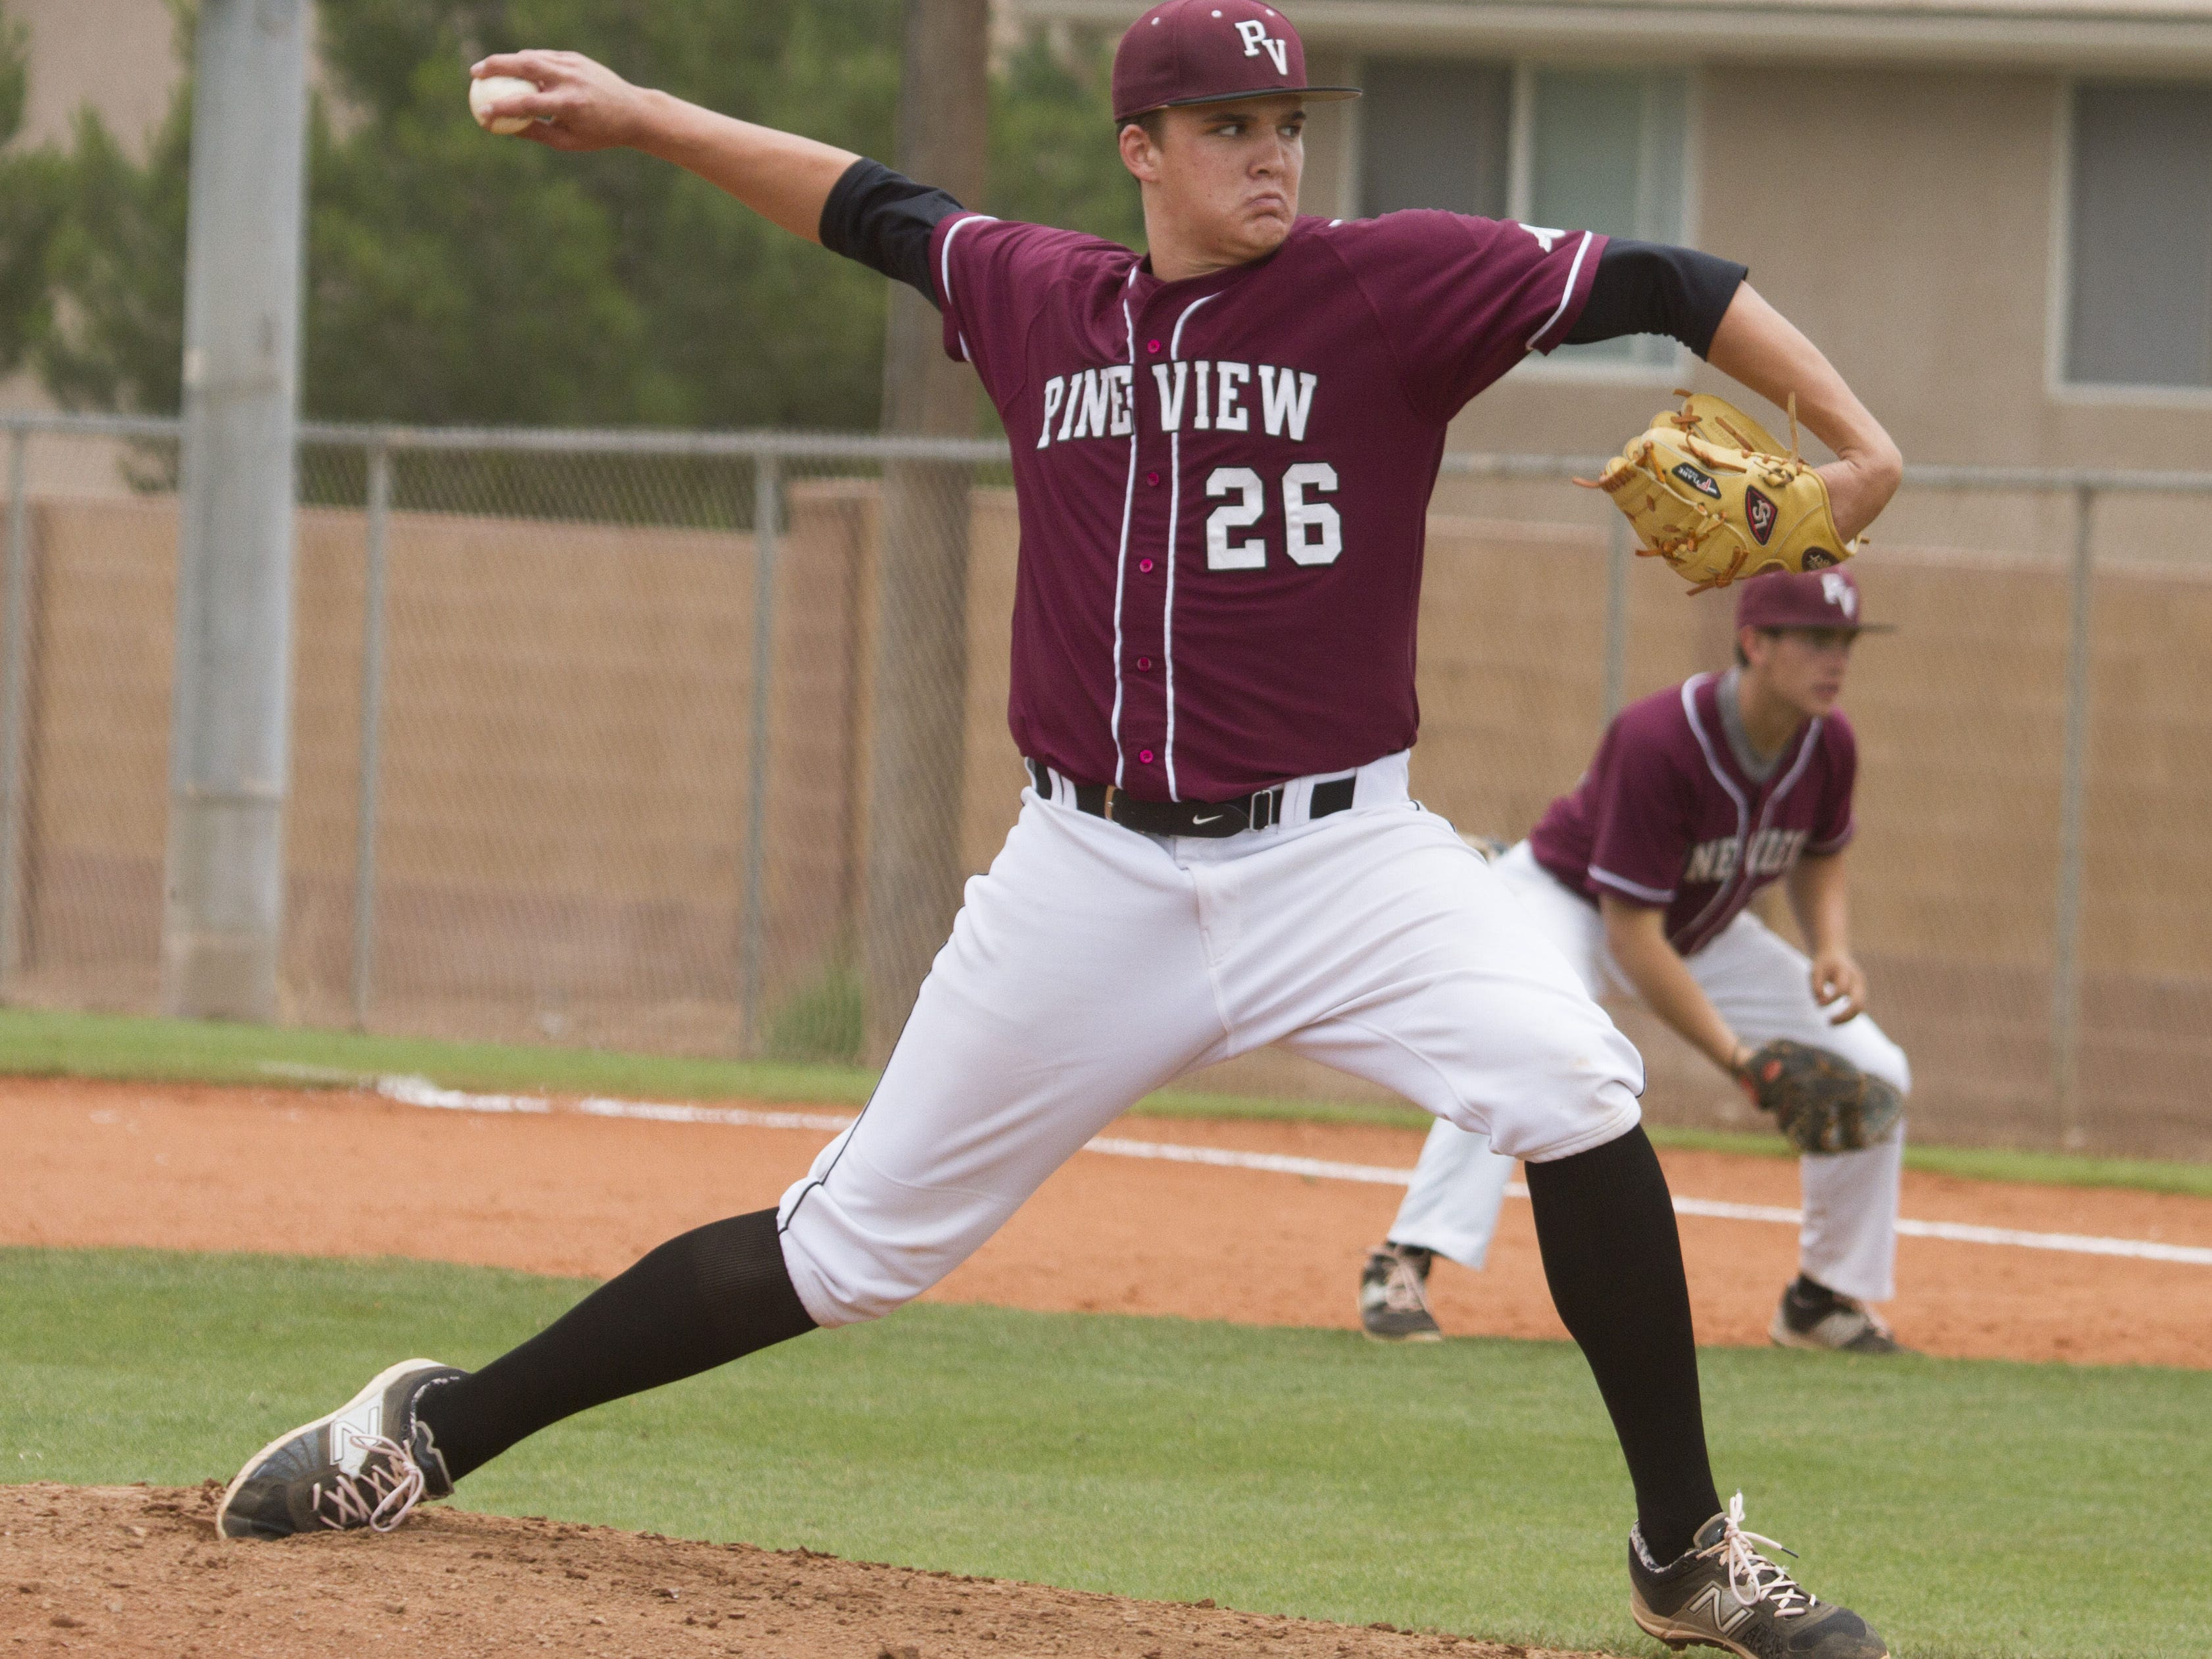 Pine View pitcher Harrison Goebel throws against Union at Pine View High School on Saturday.